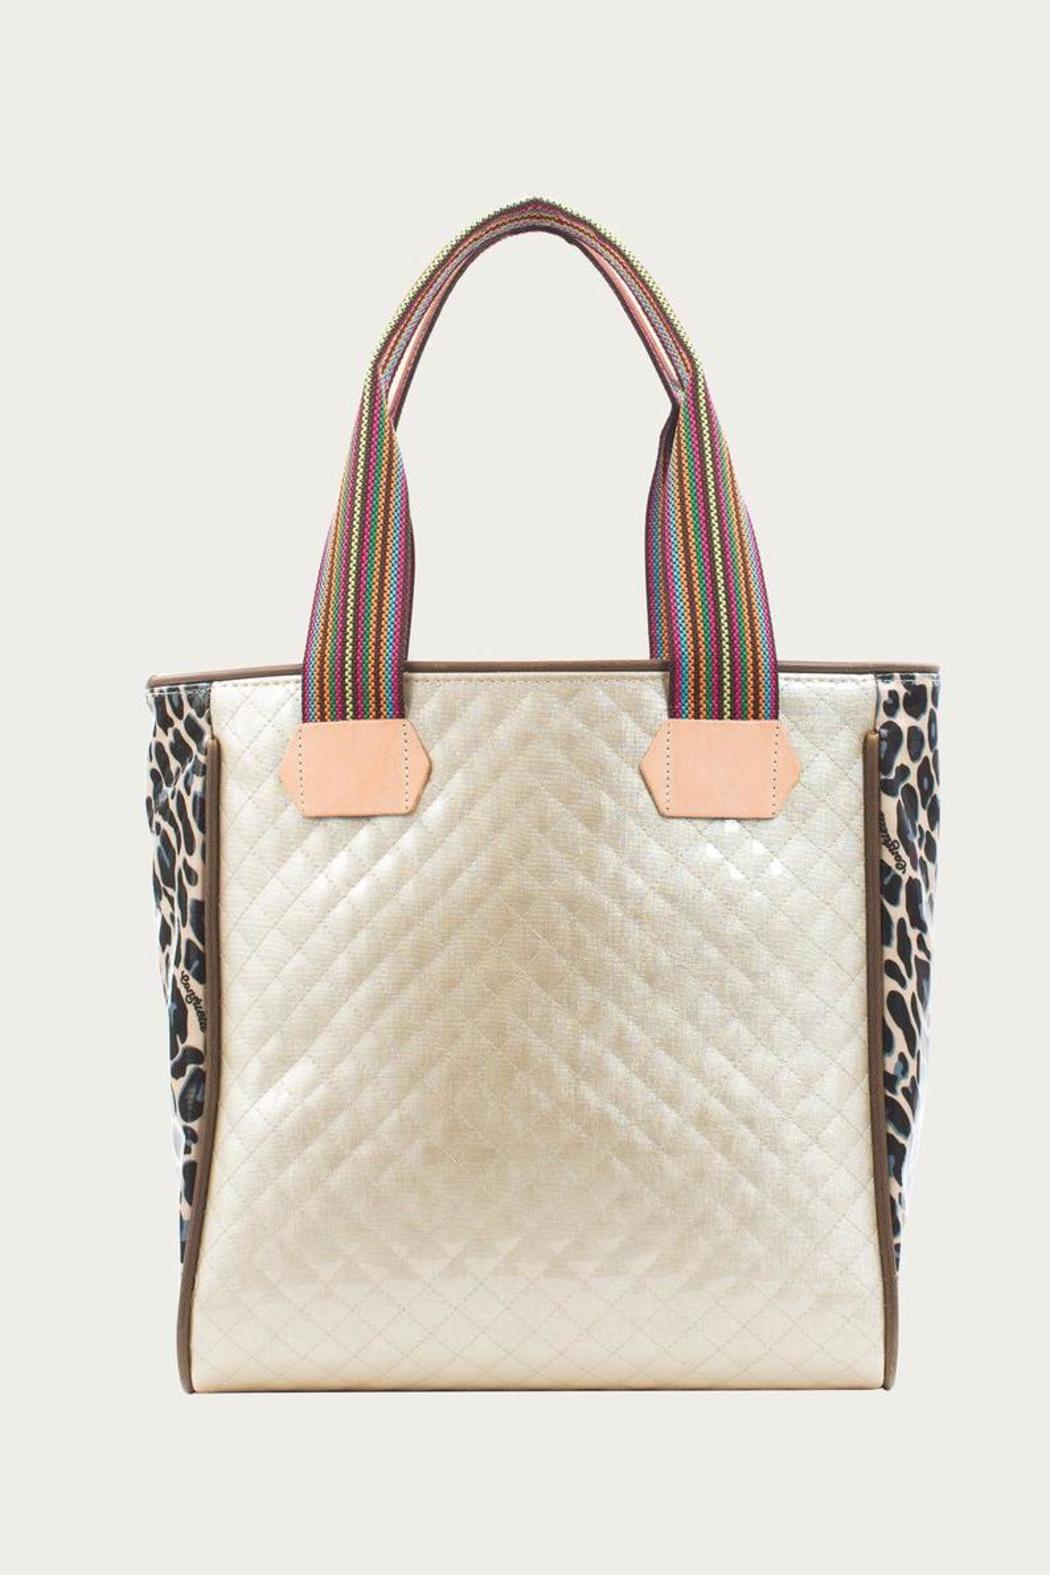 Consuela Isabel Classic Tote from Texas by Consuela — Shoptiques